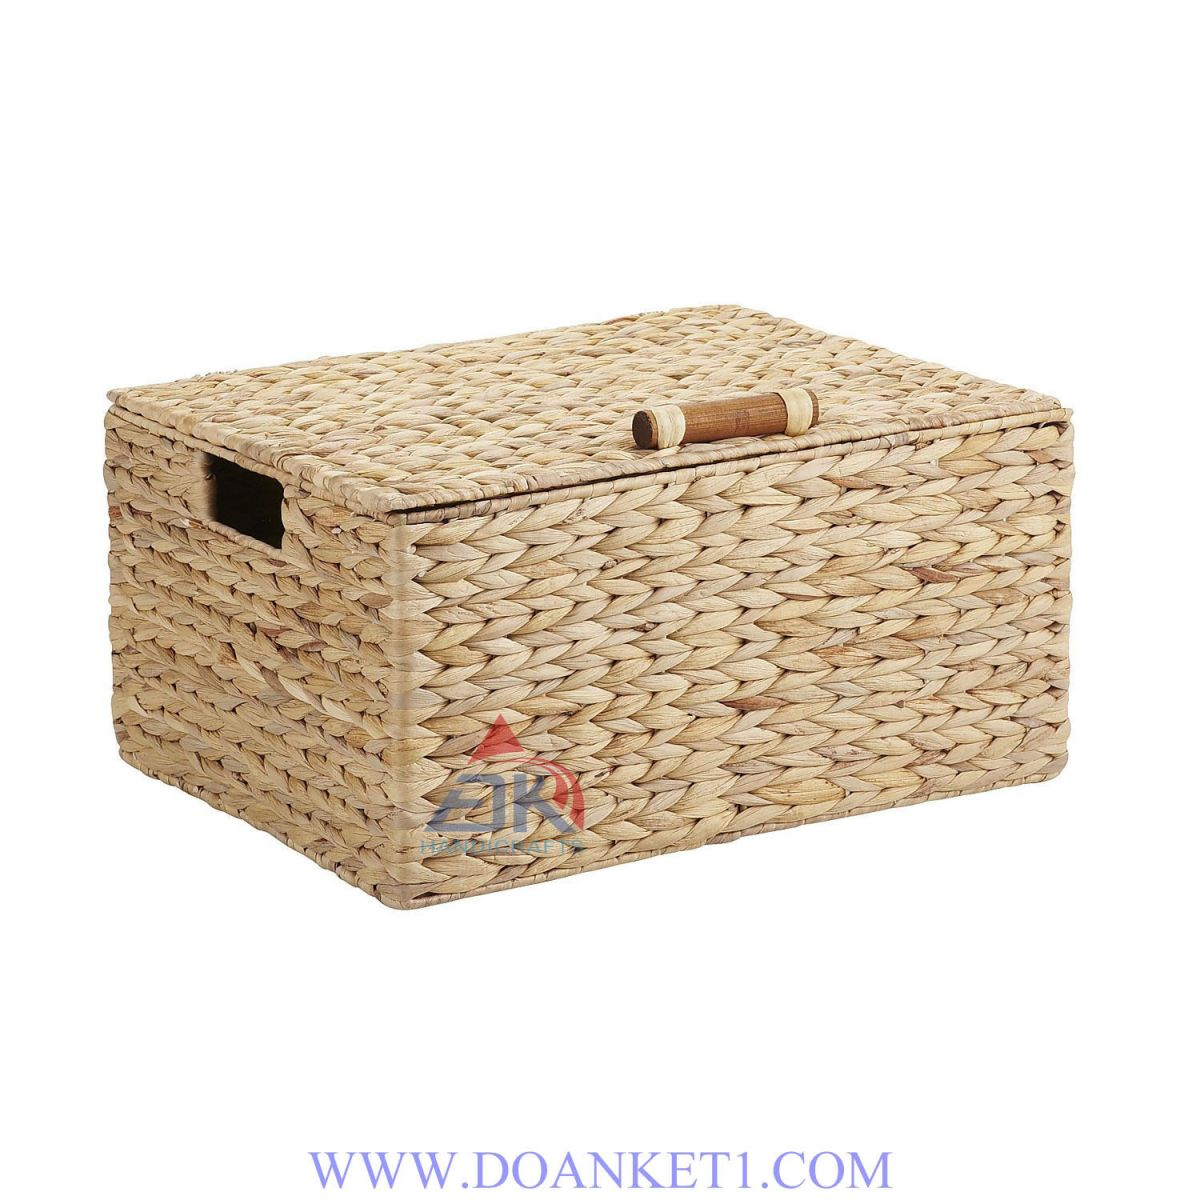 Water Hyacinth Basket With Lid # DK274